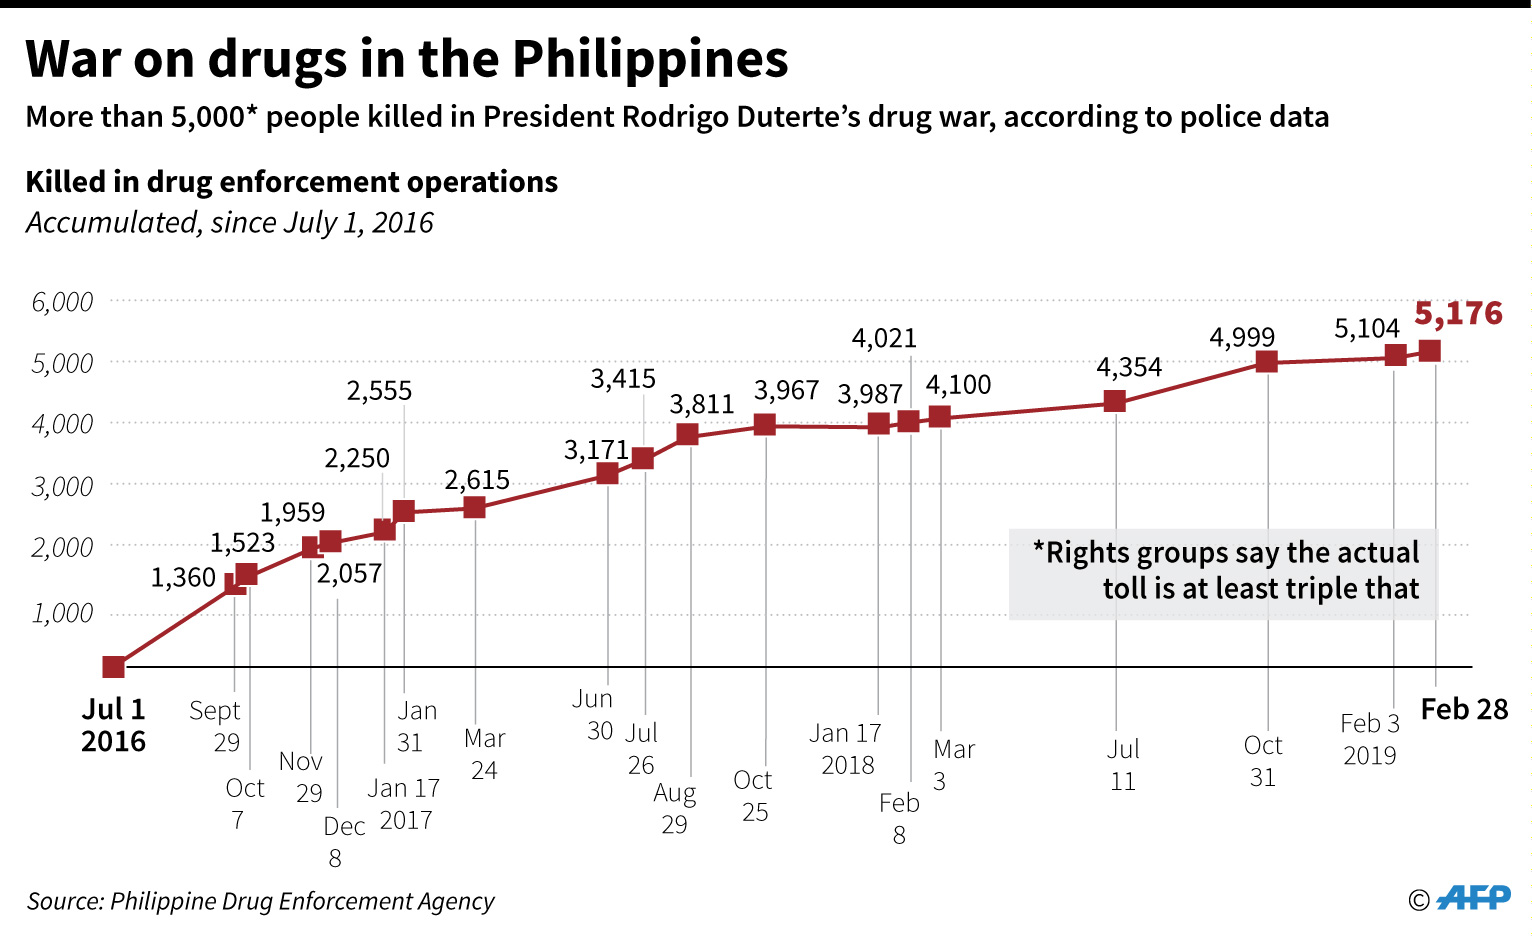 Chart on people killed in anti-drug operations in the Philippines since July 2016.